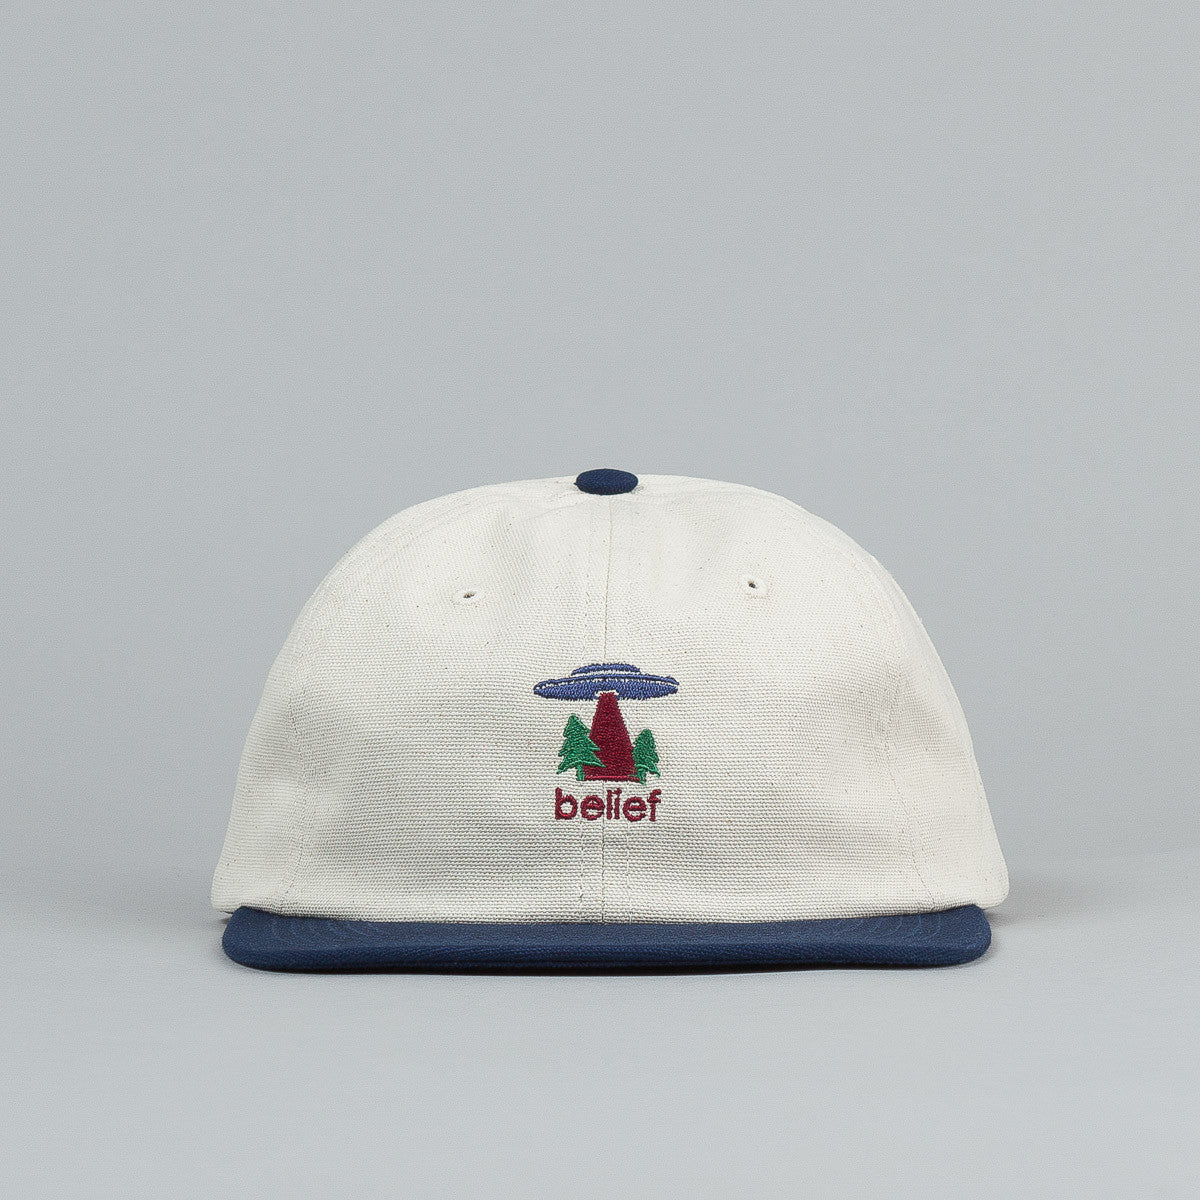 Belief Believe 6 Panel Cap - Natural / Navy